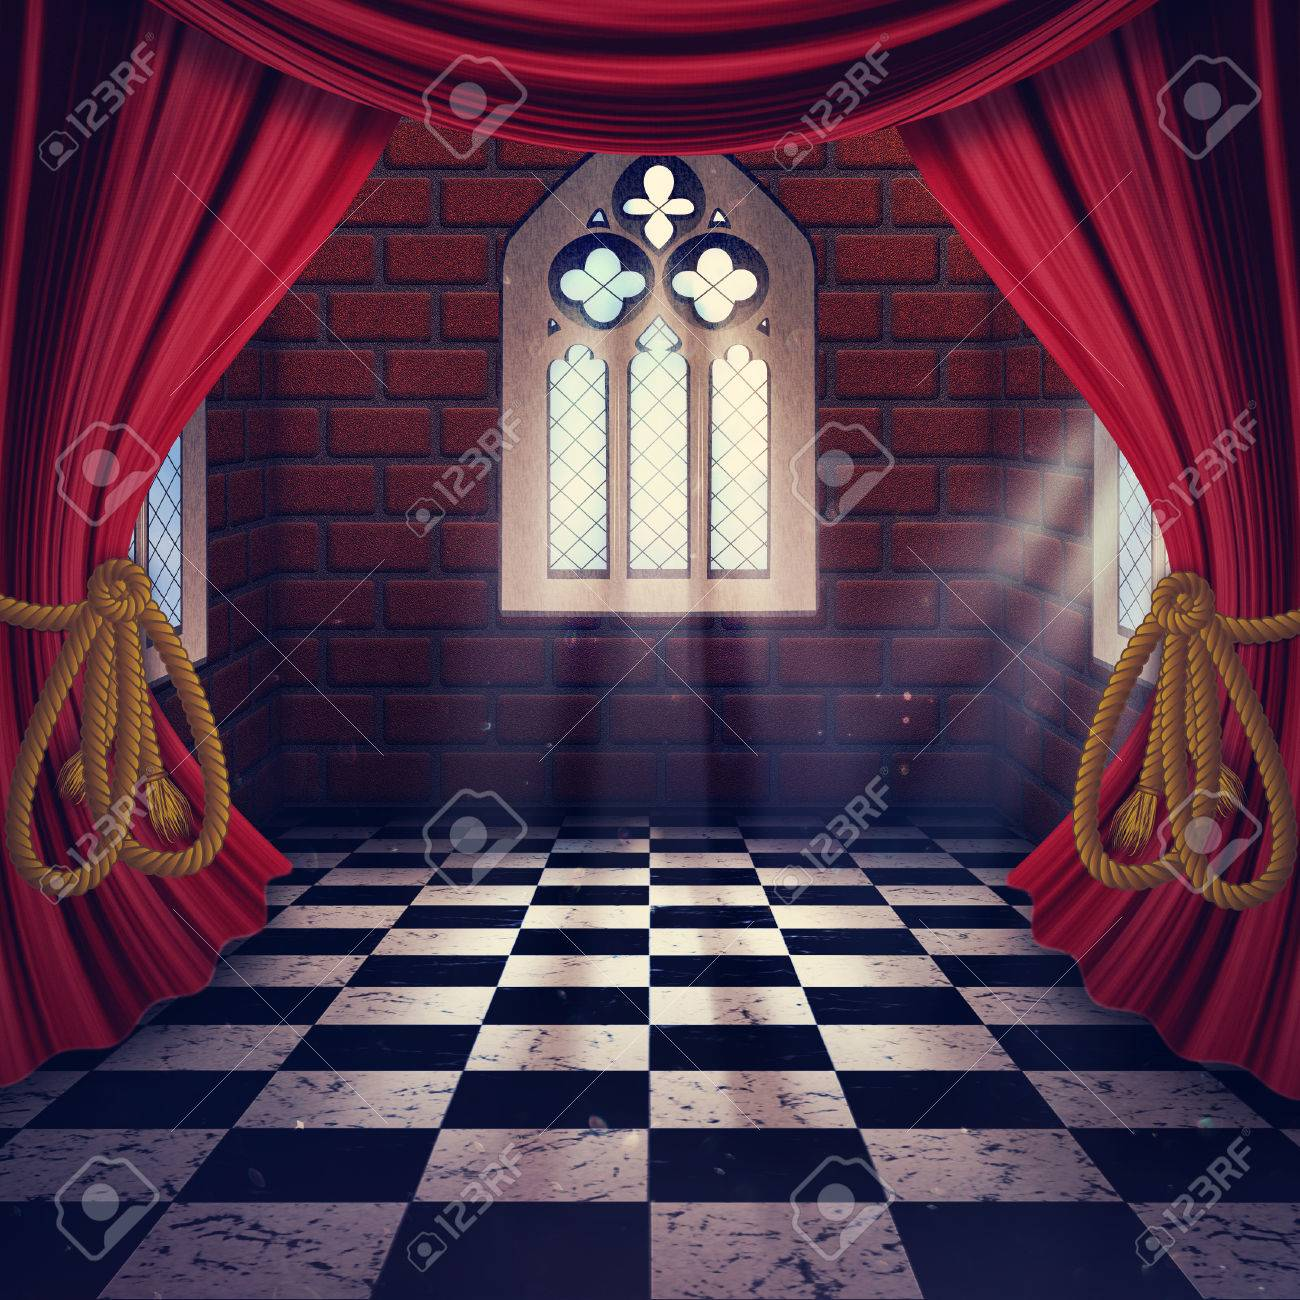 Royalty free or white curtain background drapes royalty free stock - Room With Opened Drapes Curtains And Gothic Window Background Stock Photo 56360137